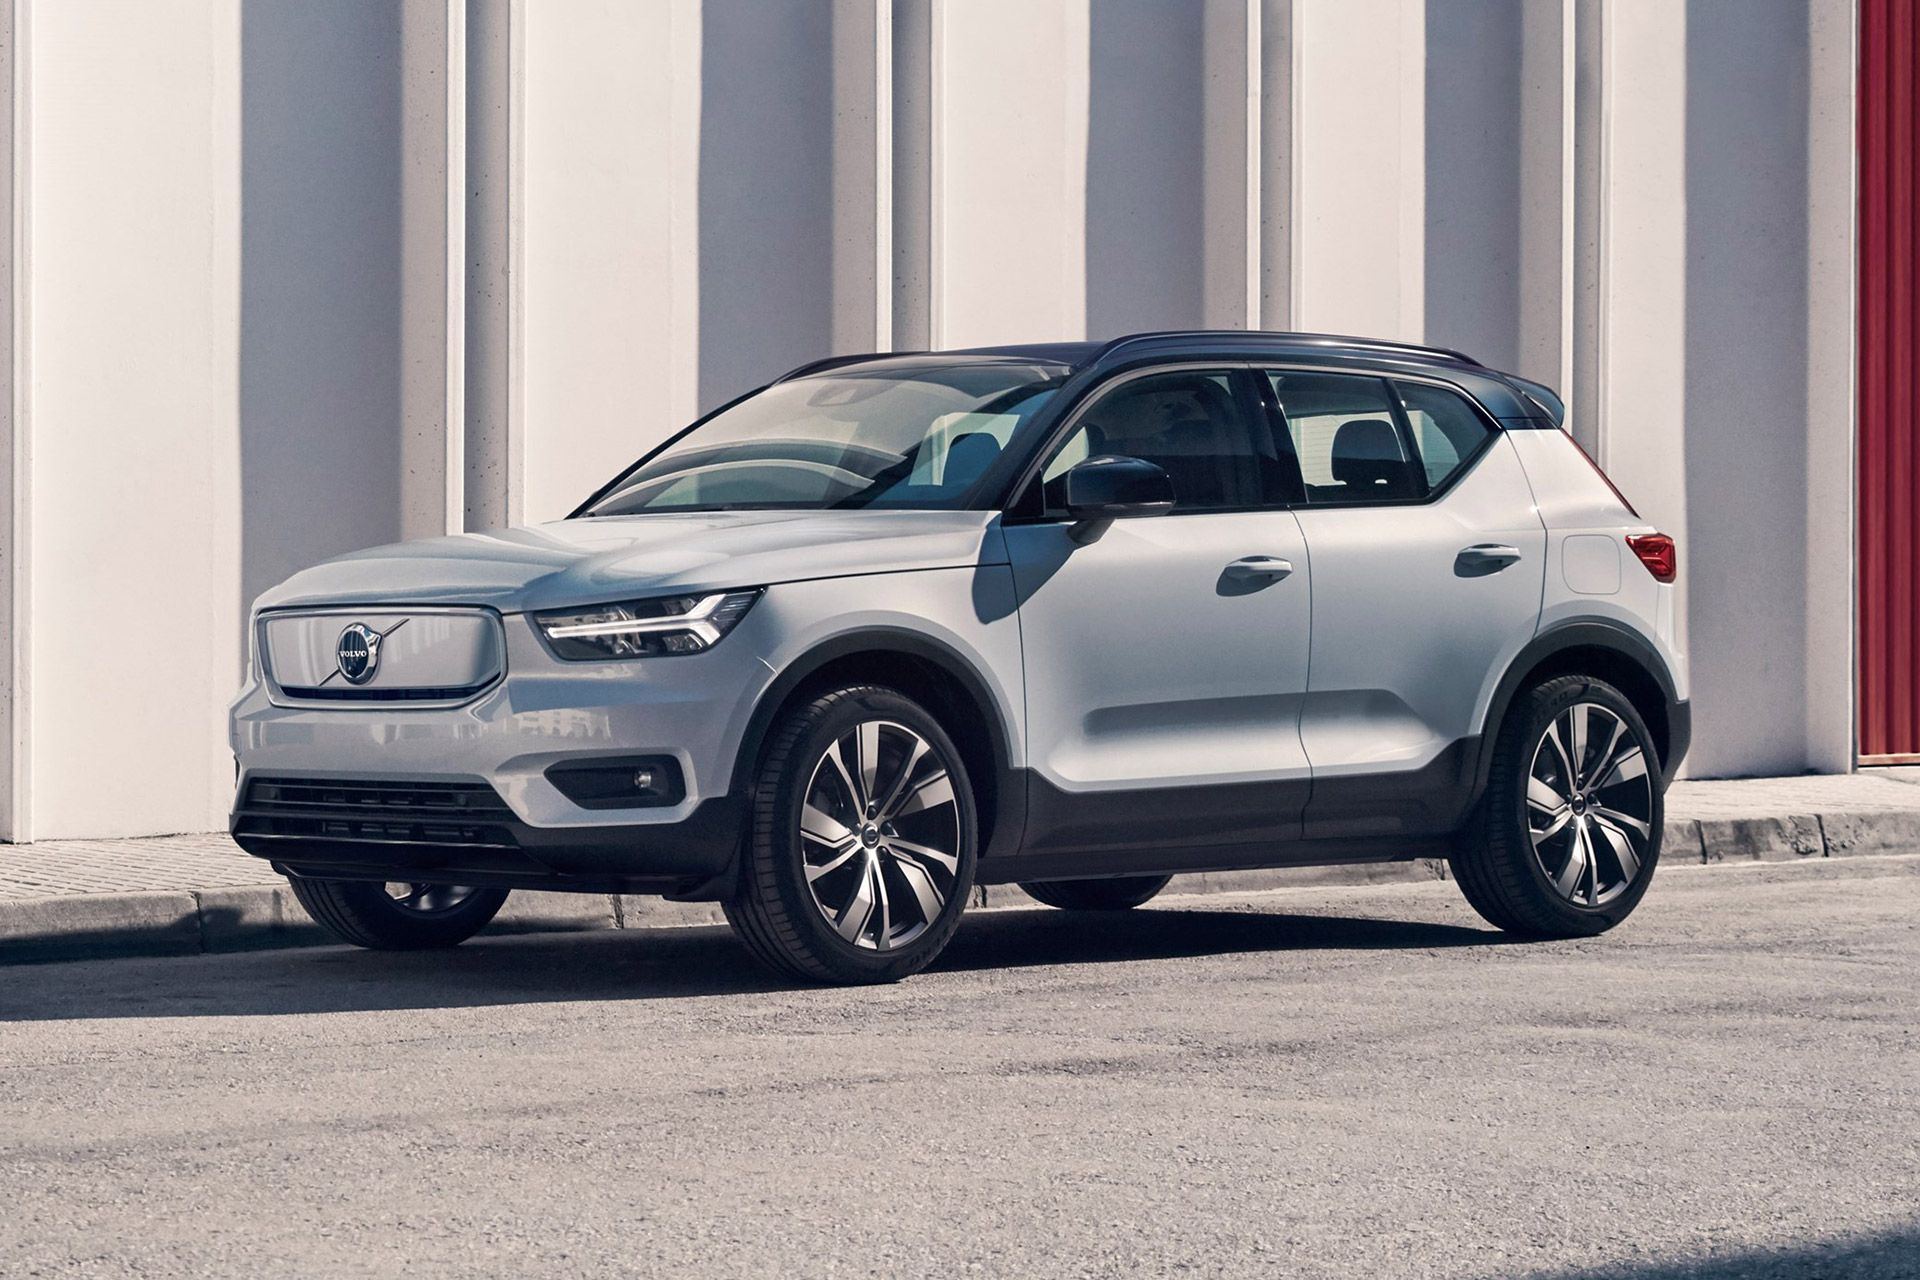 2020 Volvo XC40 Recharge SUV Volvo, All electric cars, Suv